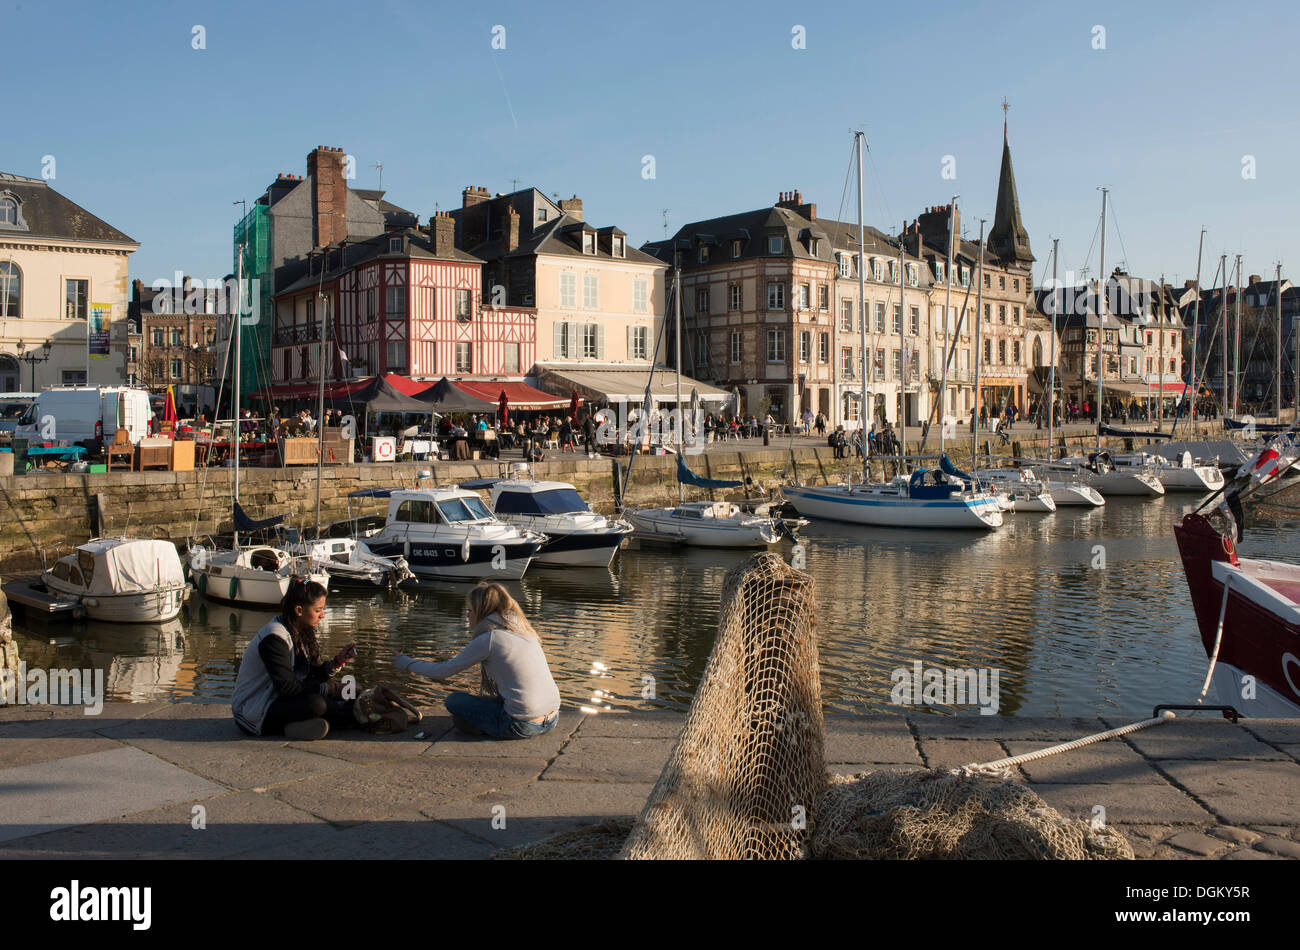 Harbour of Honfleur with row of houses at the quay, Normandy, France, Europe - Stock Image